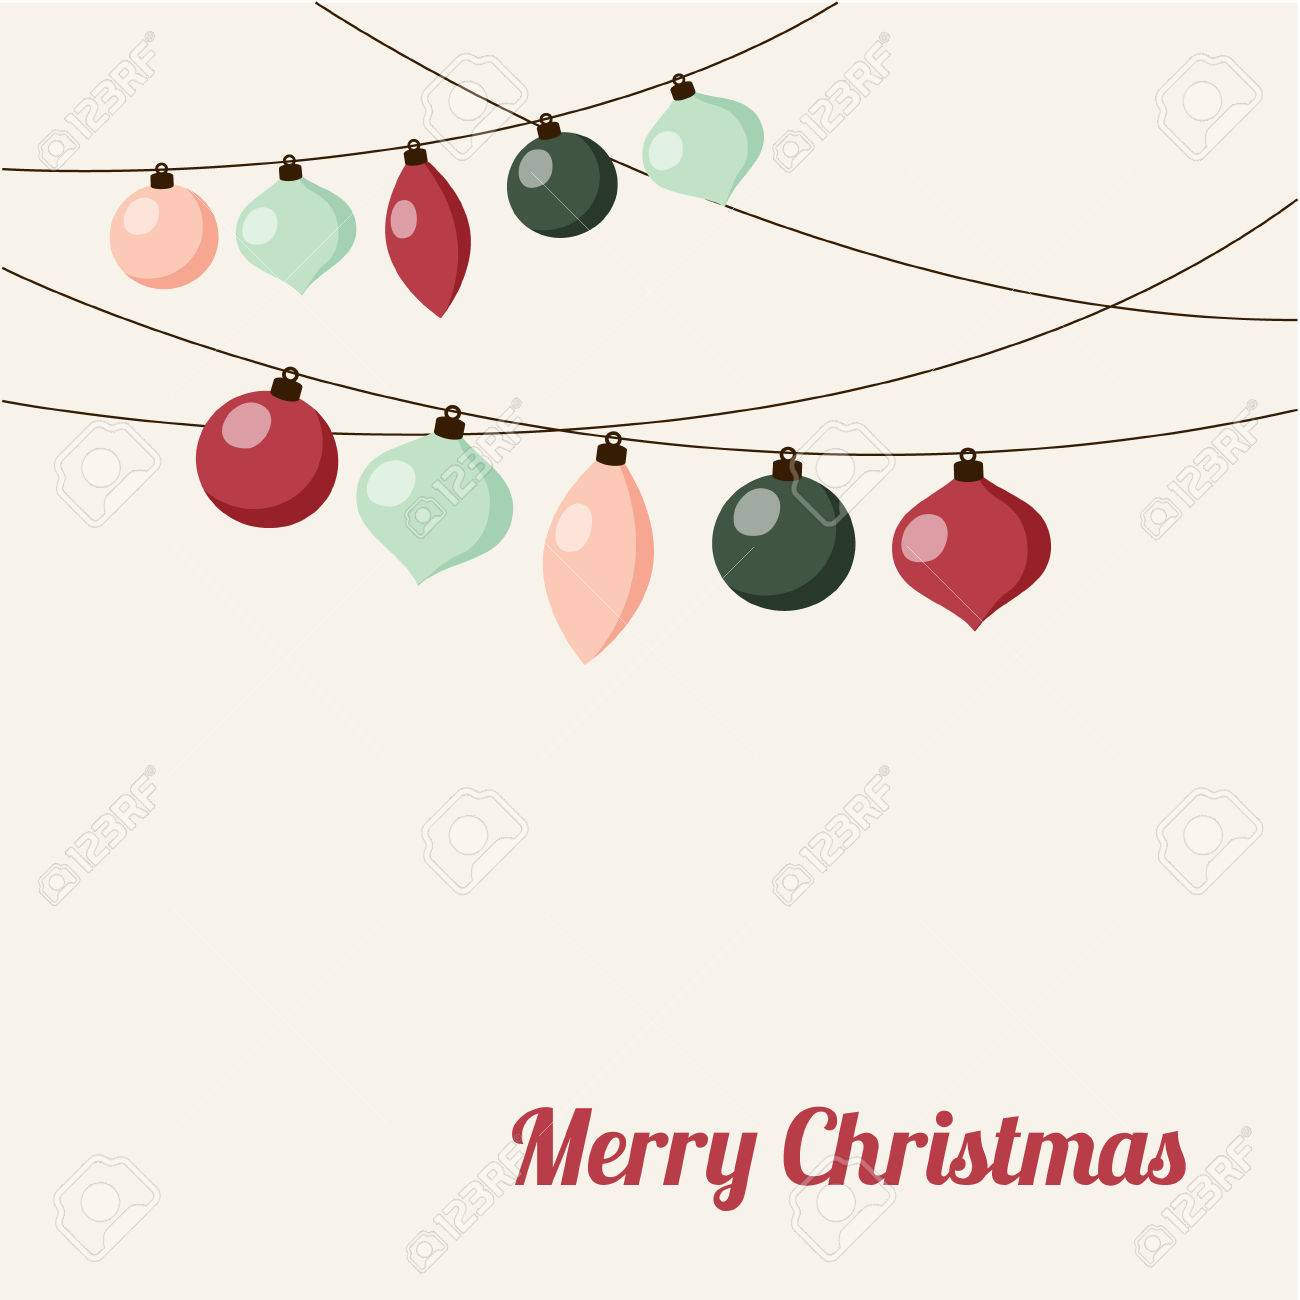 Christmas greeting card with garland of christmas balls, vector illustration background - 47967421